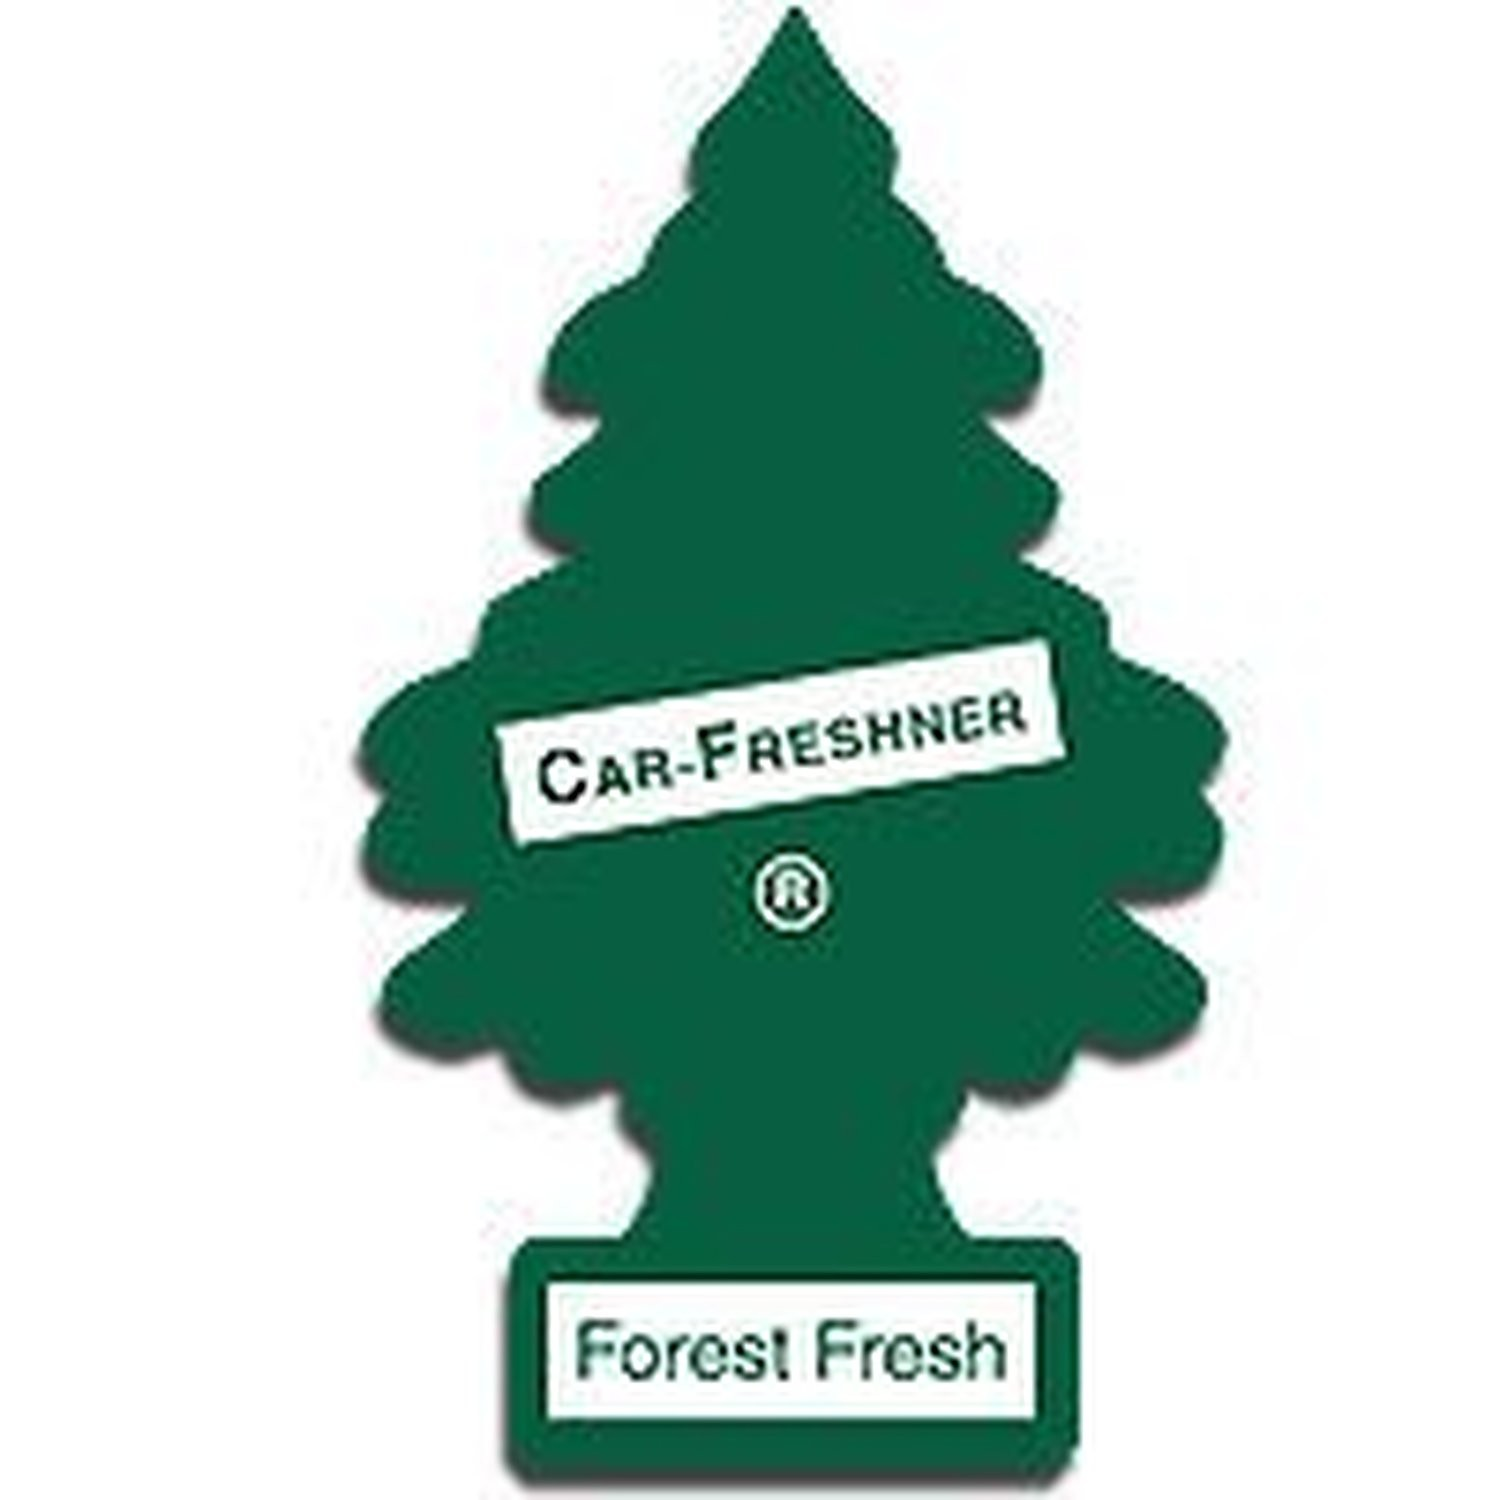 AoE Performance Magic Tree Car Air Freshener Duo Gift Pack Forest Fresh And New Car Scent